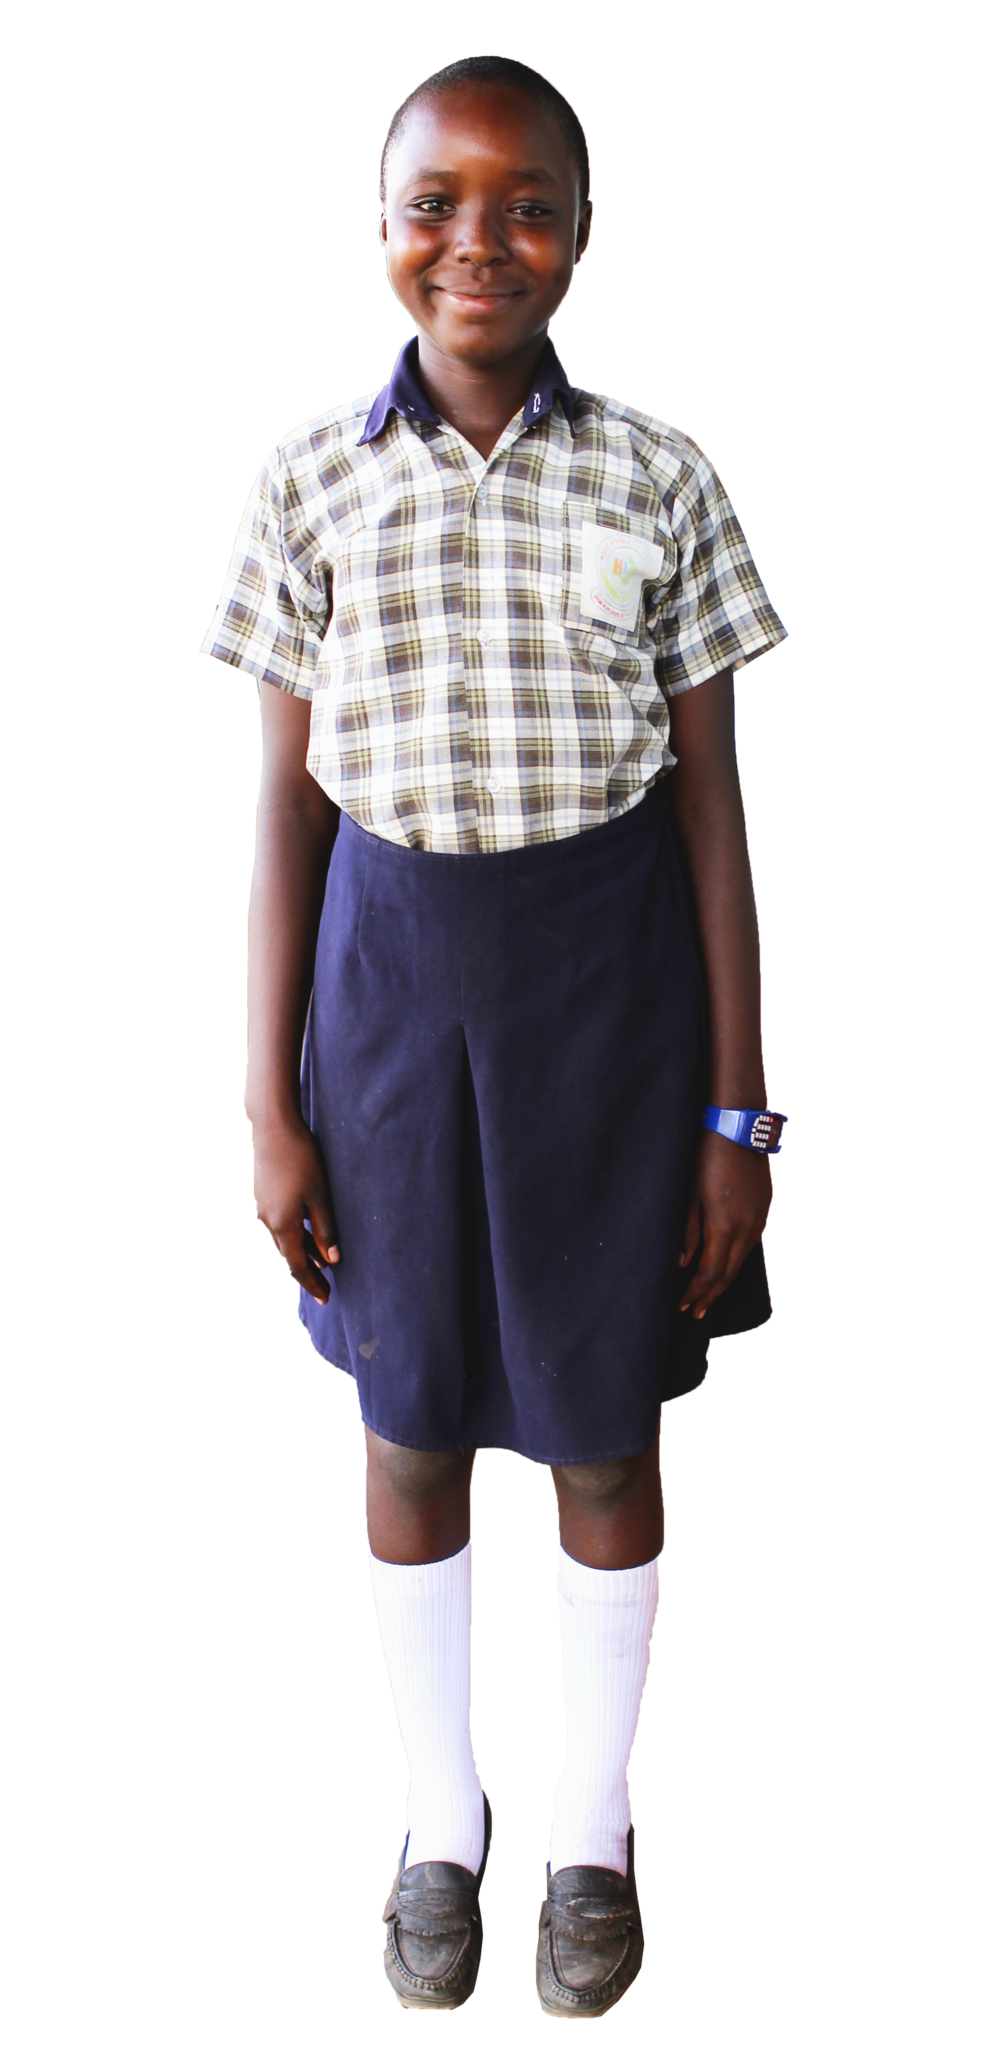 School Uniforms: £17  - It is standard in Uganda for students to have uniforms sets. A uniform set includes: formal uniform attire, PE clothes, a sweater, and socks.